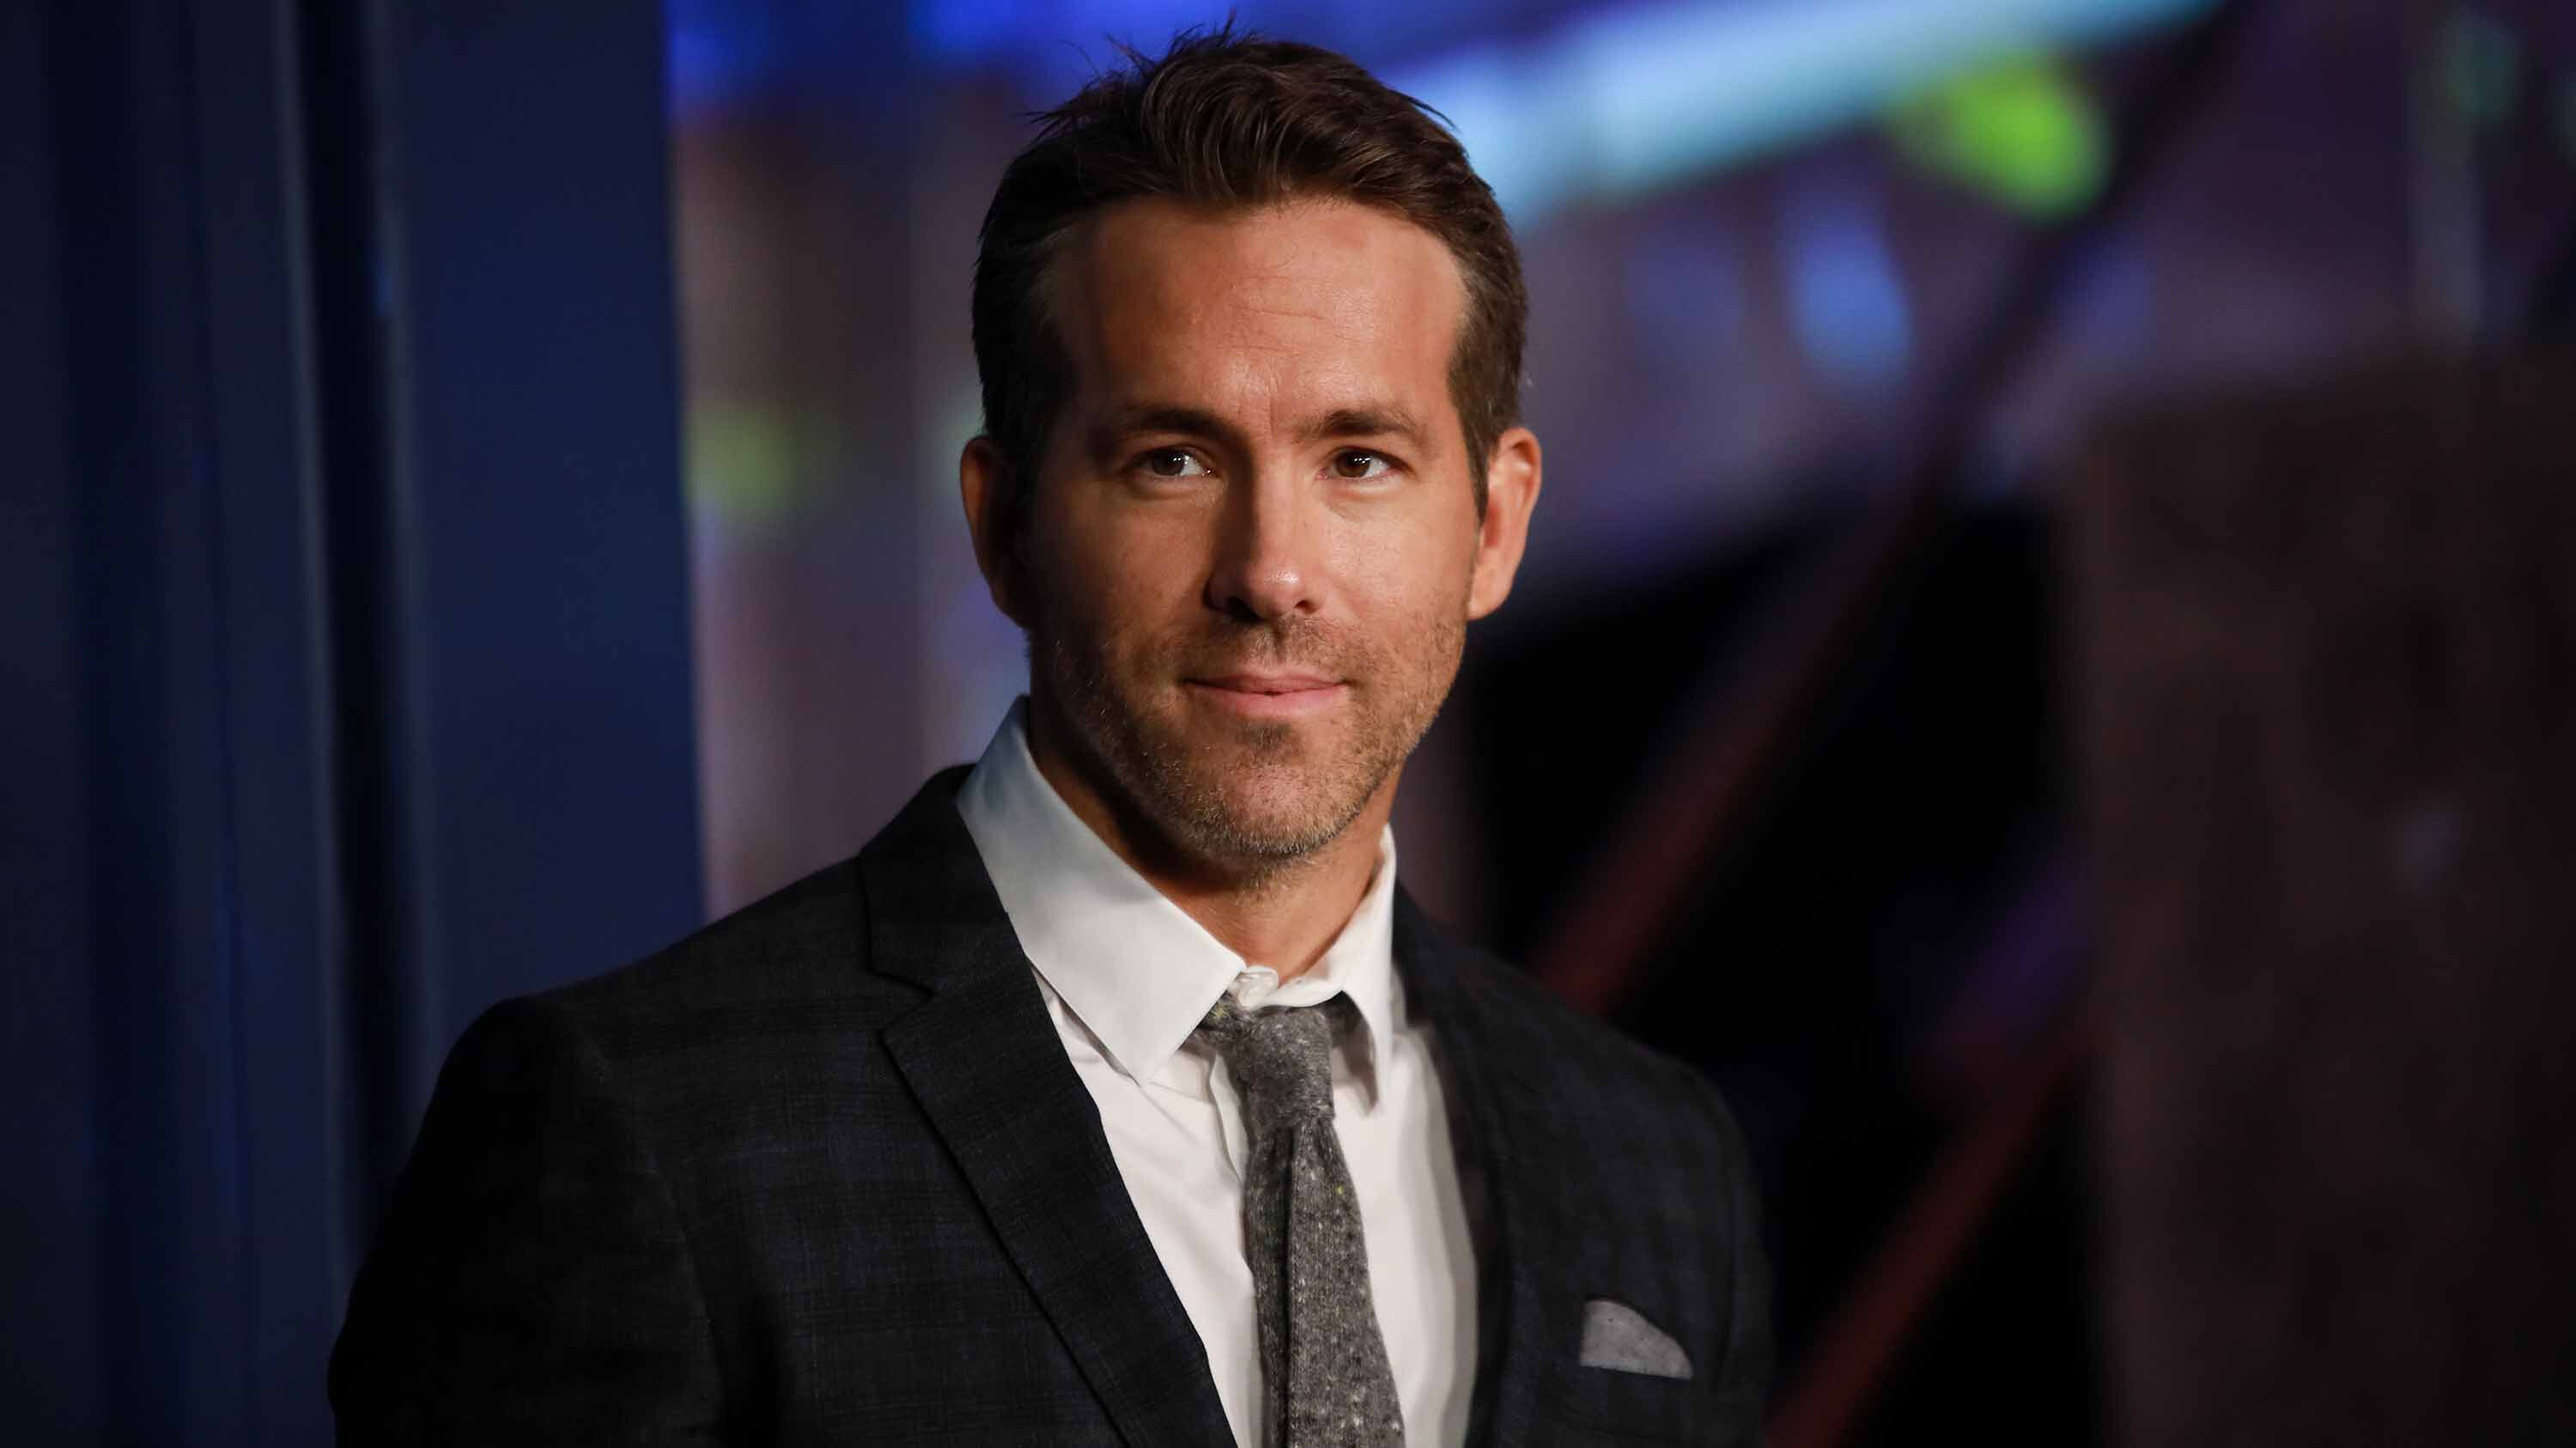 Ryan Reynolds gets real about anxiety